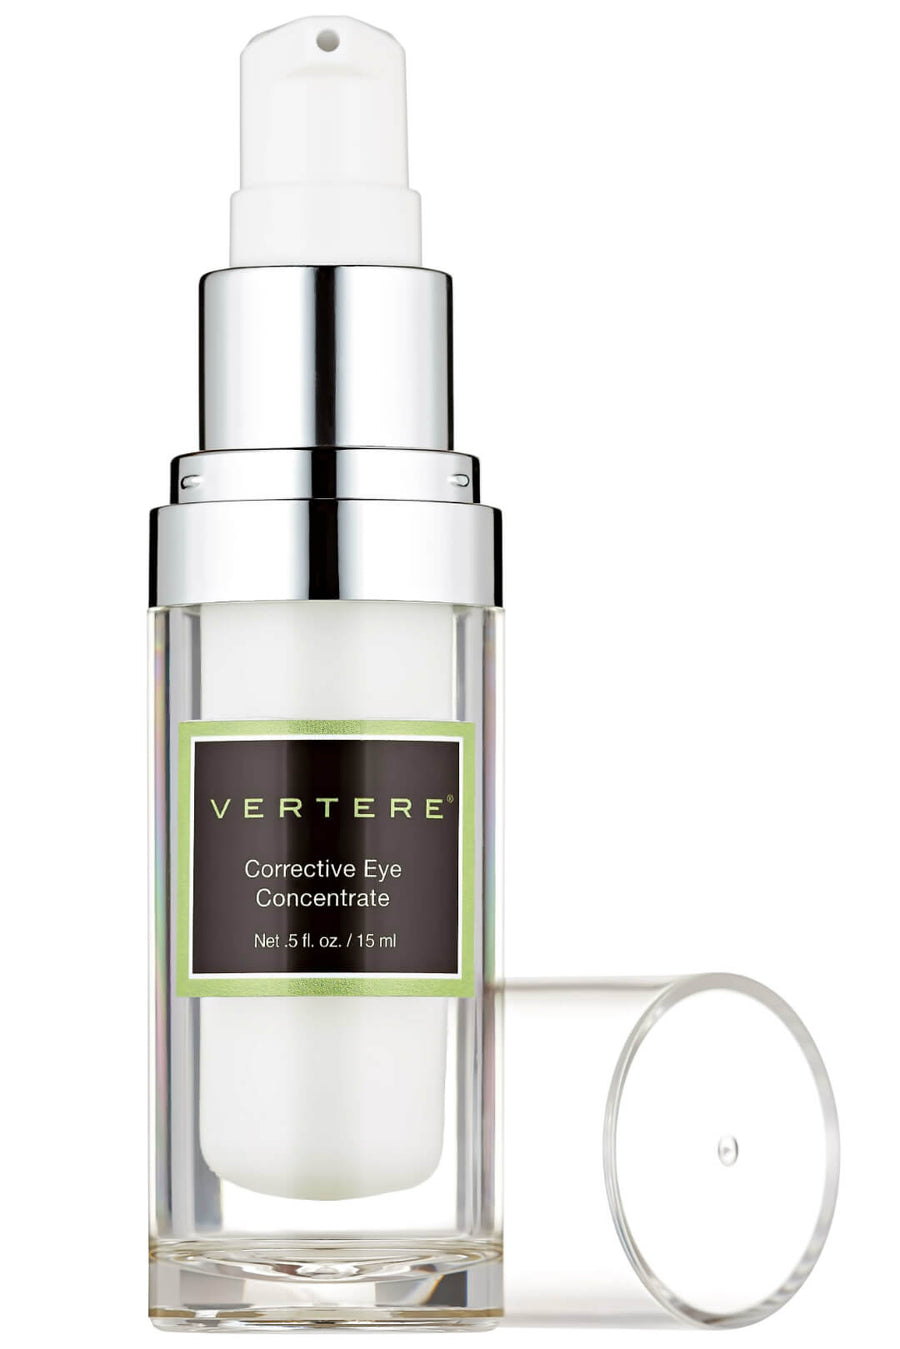 VERTERE Corrective Eye Concentrate, Eye Treatment, VERTERE, Luvi Beauty